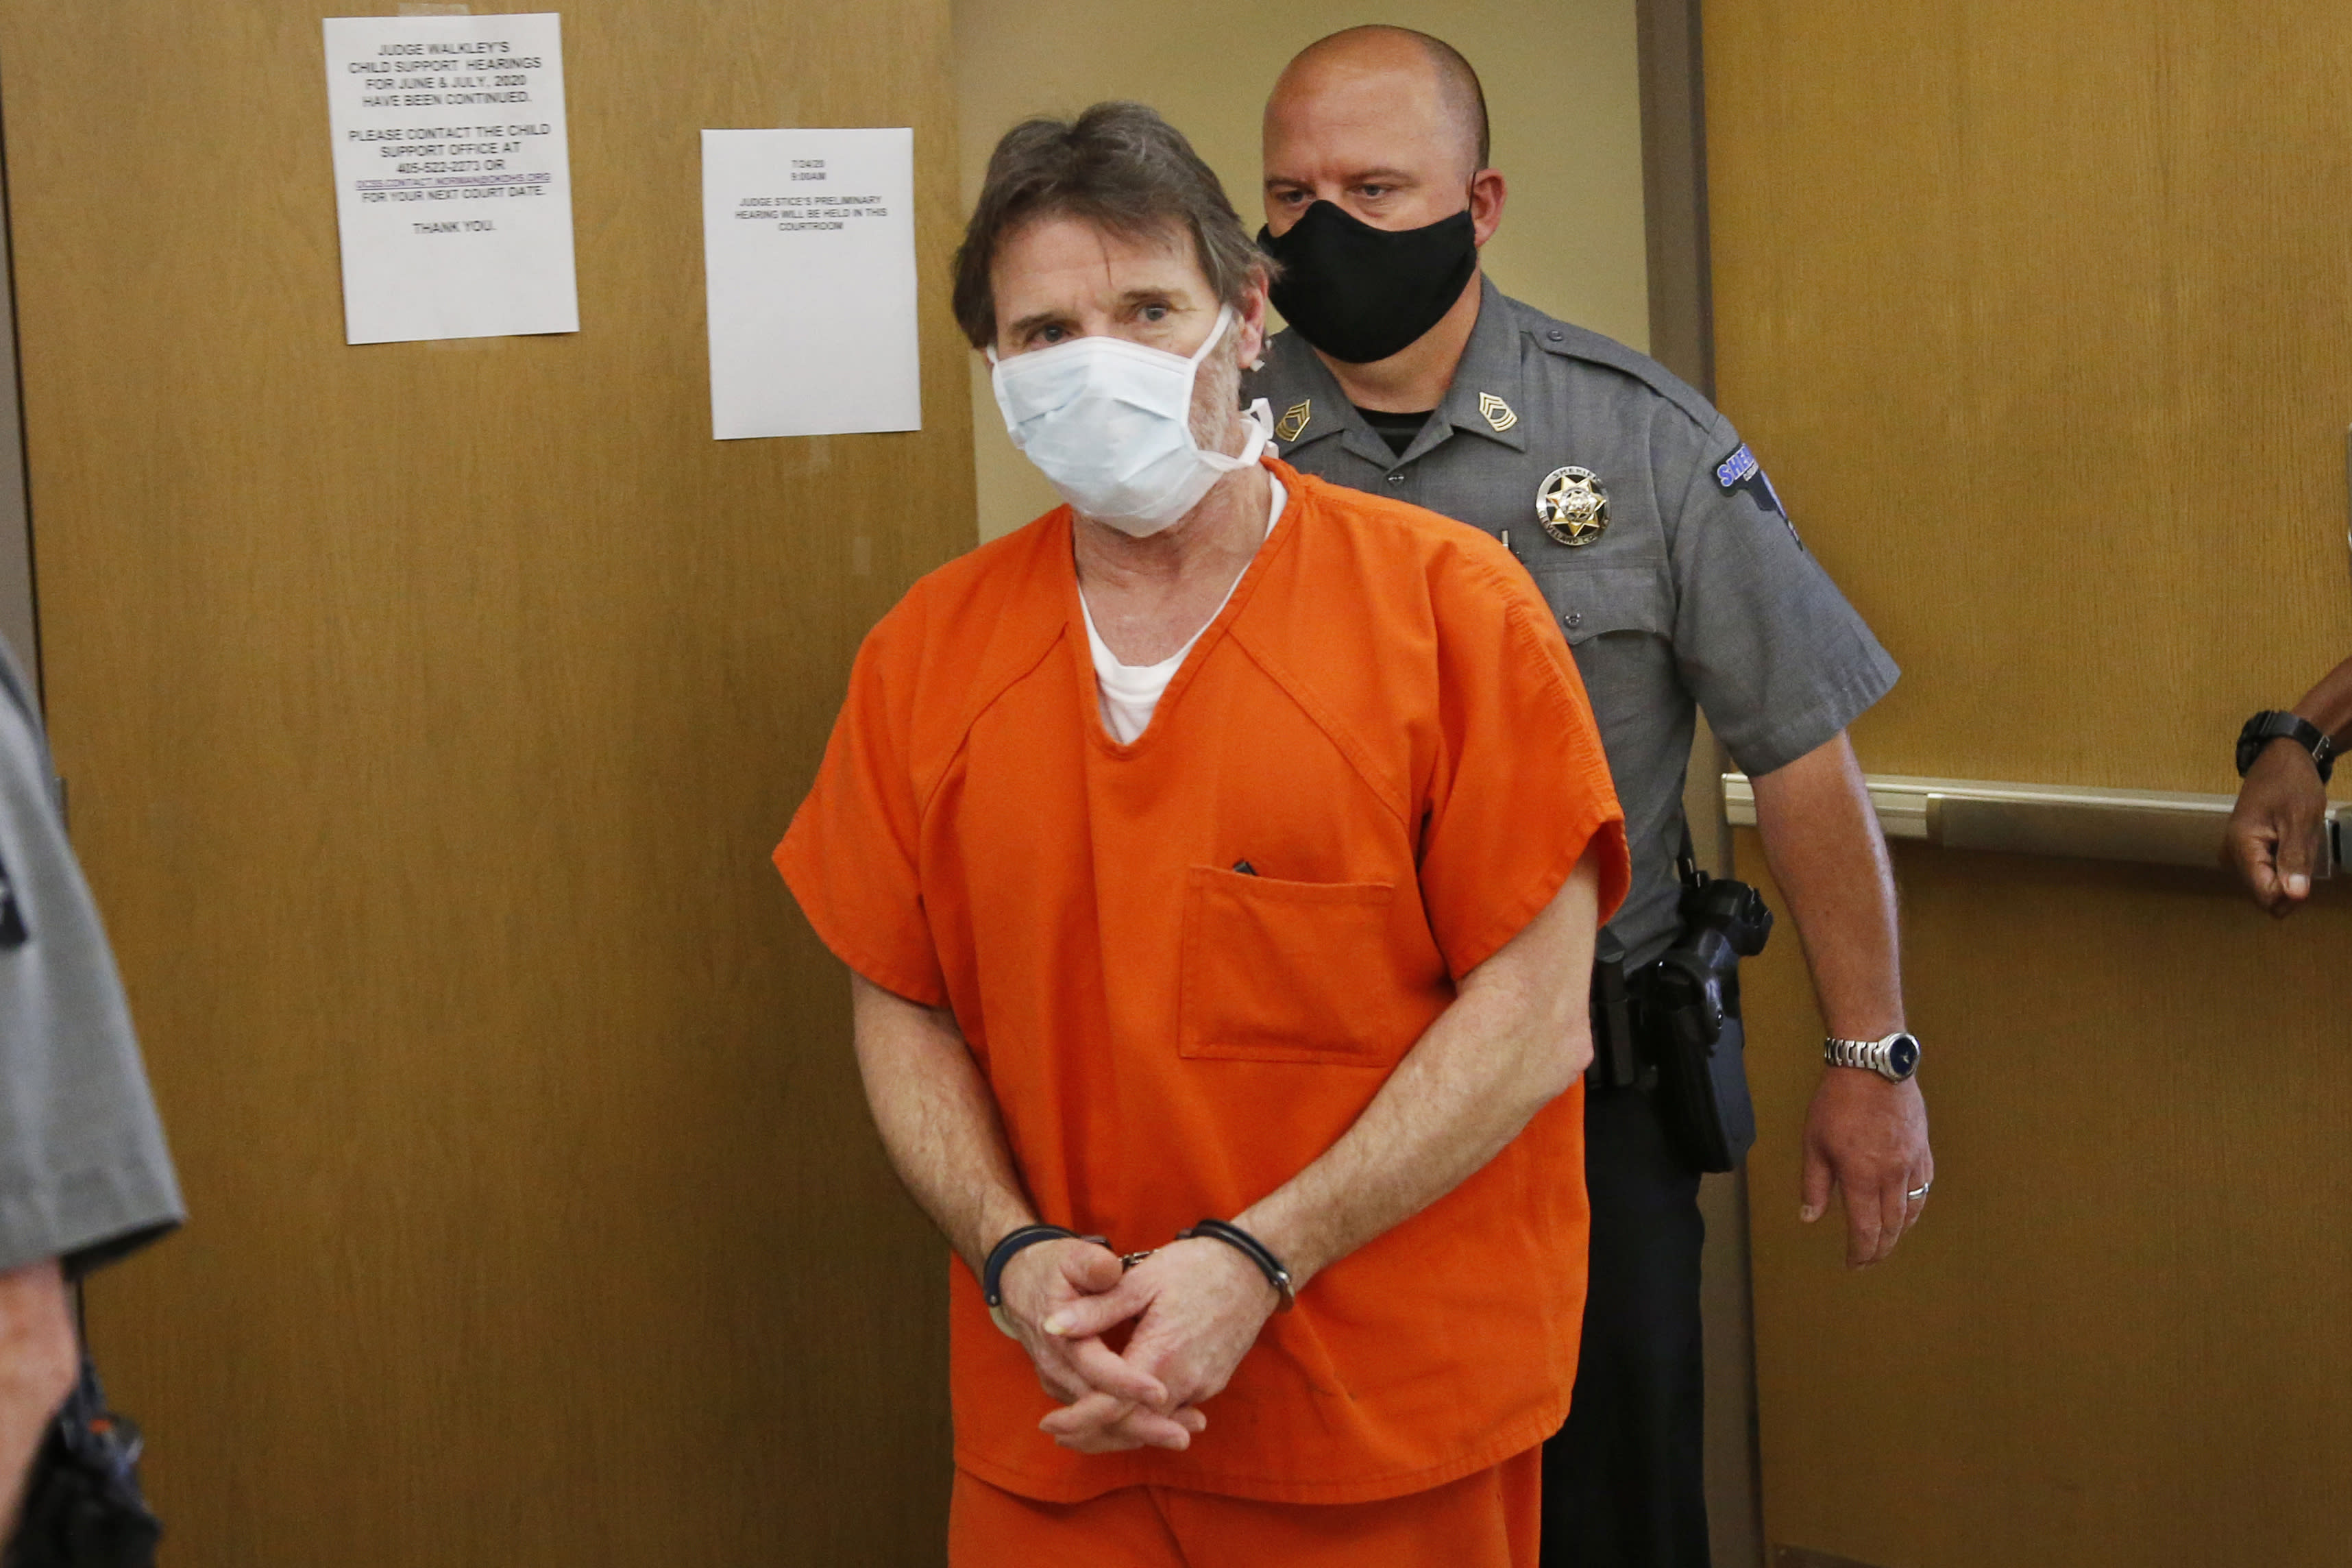 Max Townsend, the man accused of killing three Moore High School cross-county runners and injuring several others in alleged hit and run crash, leaves the courtroom during a lunch break in a preliminary hearing in Norman, Okla., Friday, July 24, 2020. (AP Photo/Sue Ogrocki)